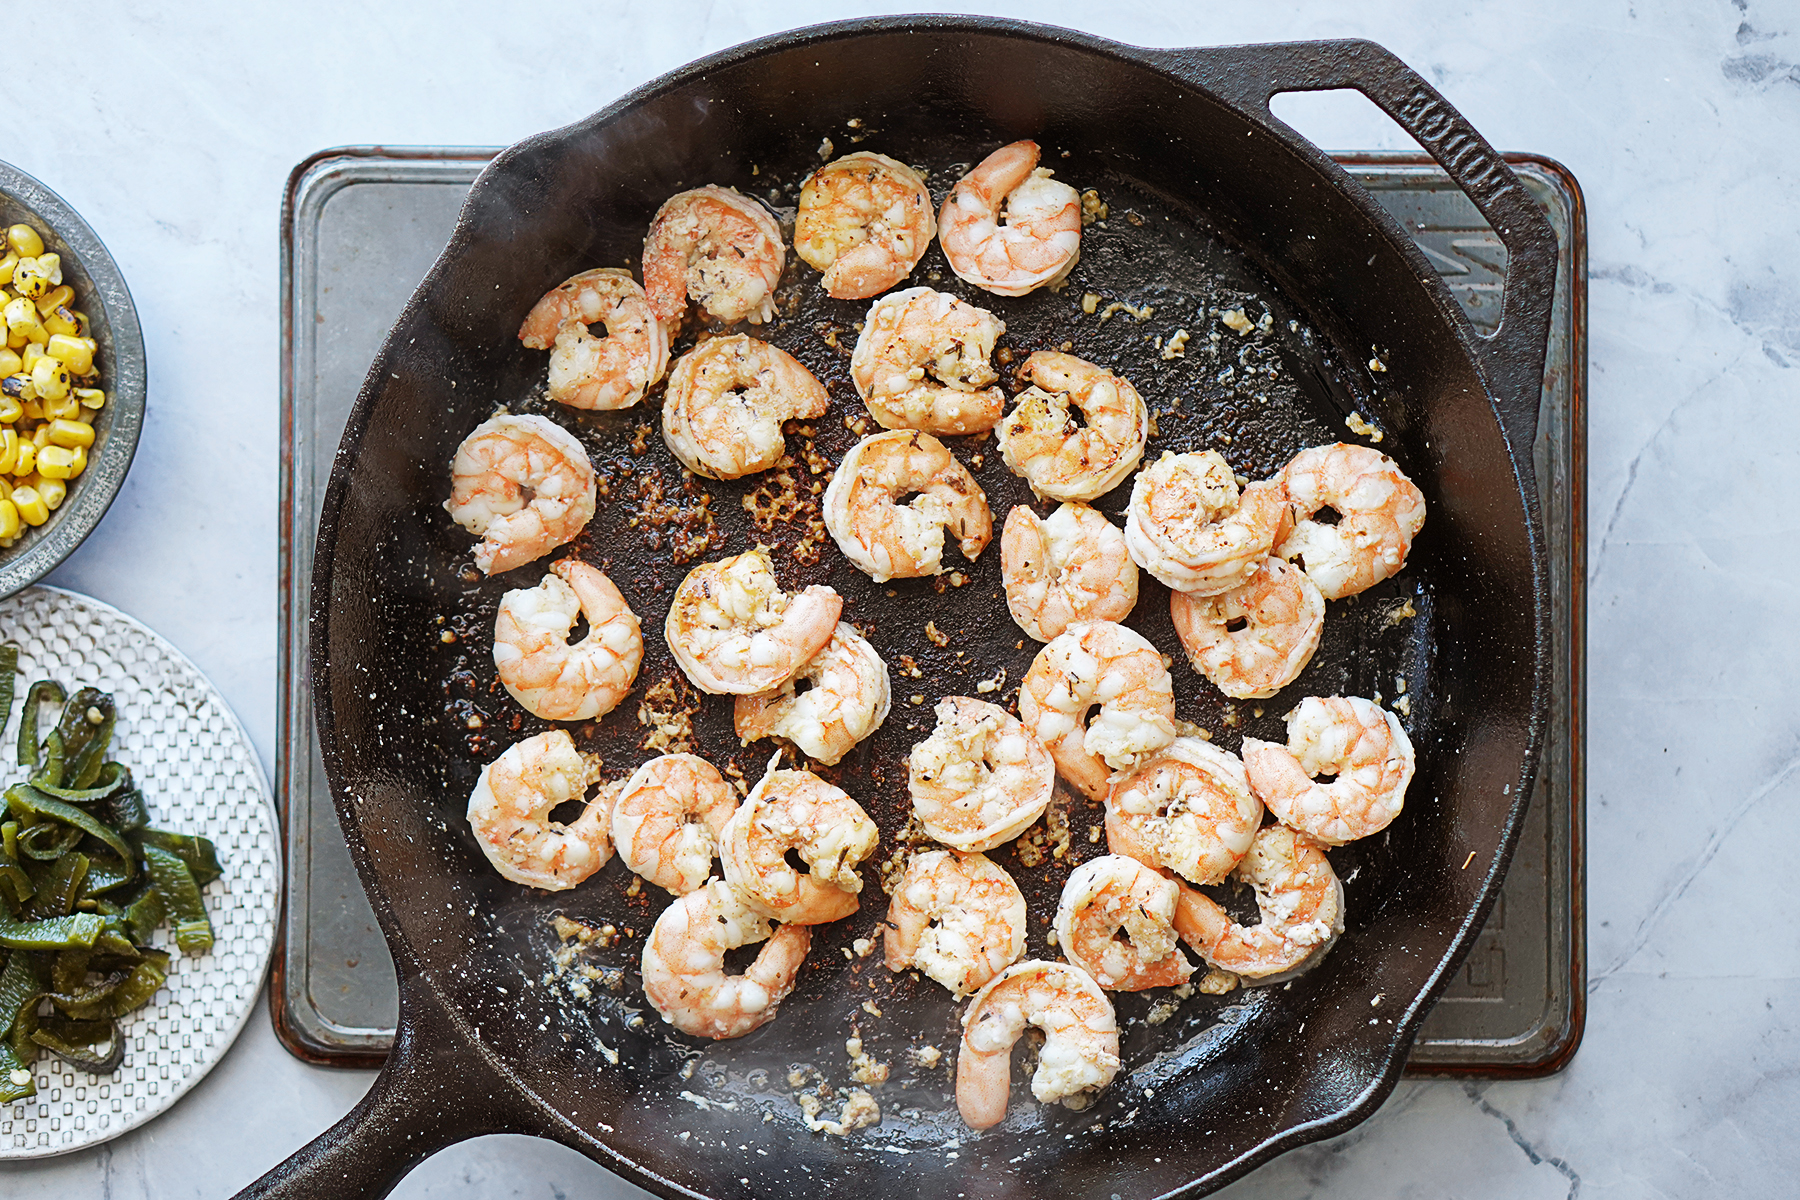 Cooked shrimps on a cast iron skillet